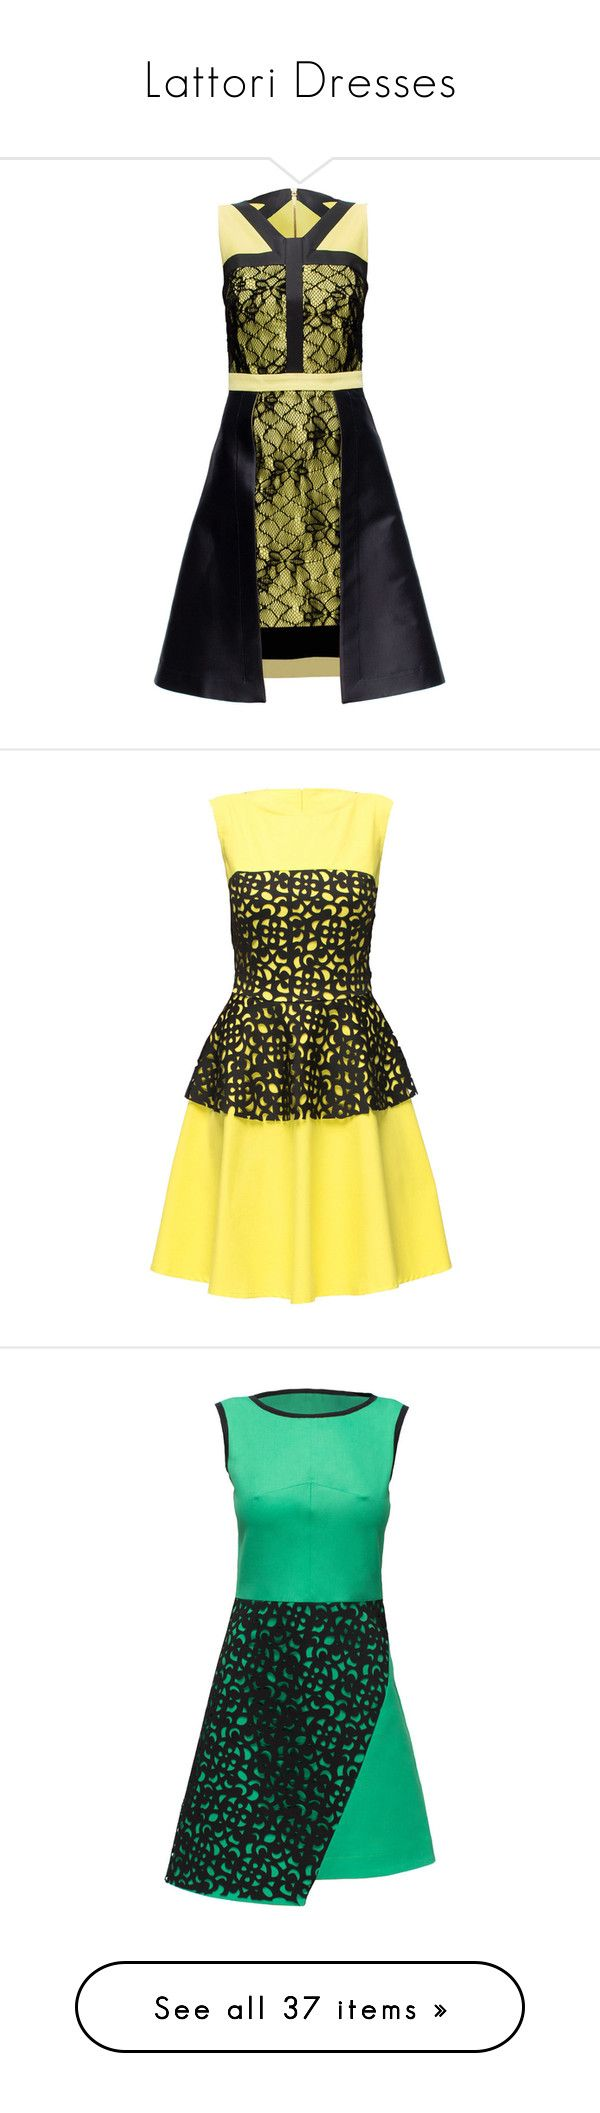 """Lattori Dresses"" by lulucosby ❤ liked on Polyvore featuring dresses, lattori, short dresses, yellow mini dress, short sparkly dresses, yellow dress, short lace dress, slim fit dress, cotton corset and yellow corset"